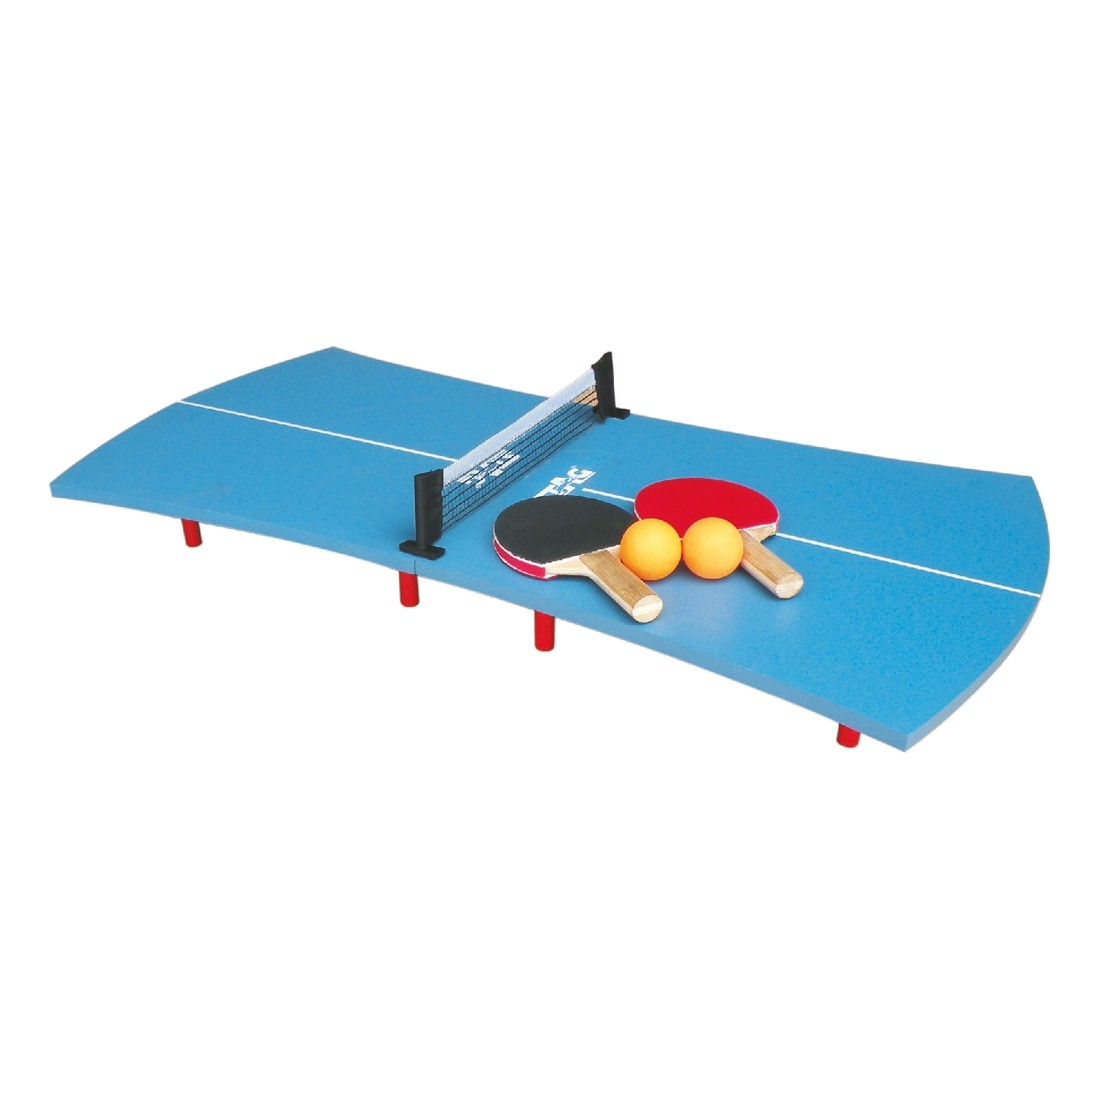 79171f87a Stag Super Mini Ping Pong Table Squeezed - Table Tennis Tables - Table  Tennis - Sport